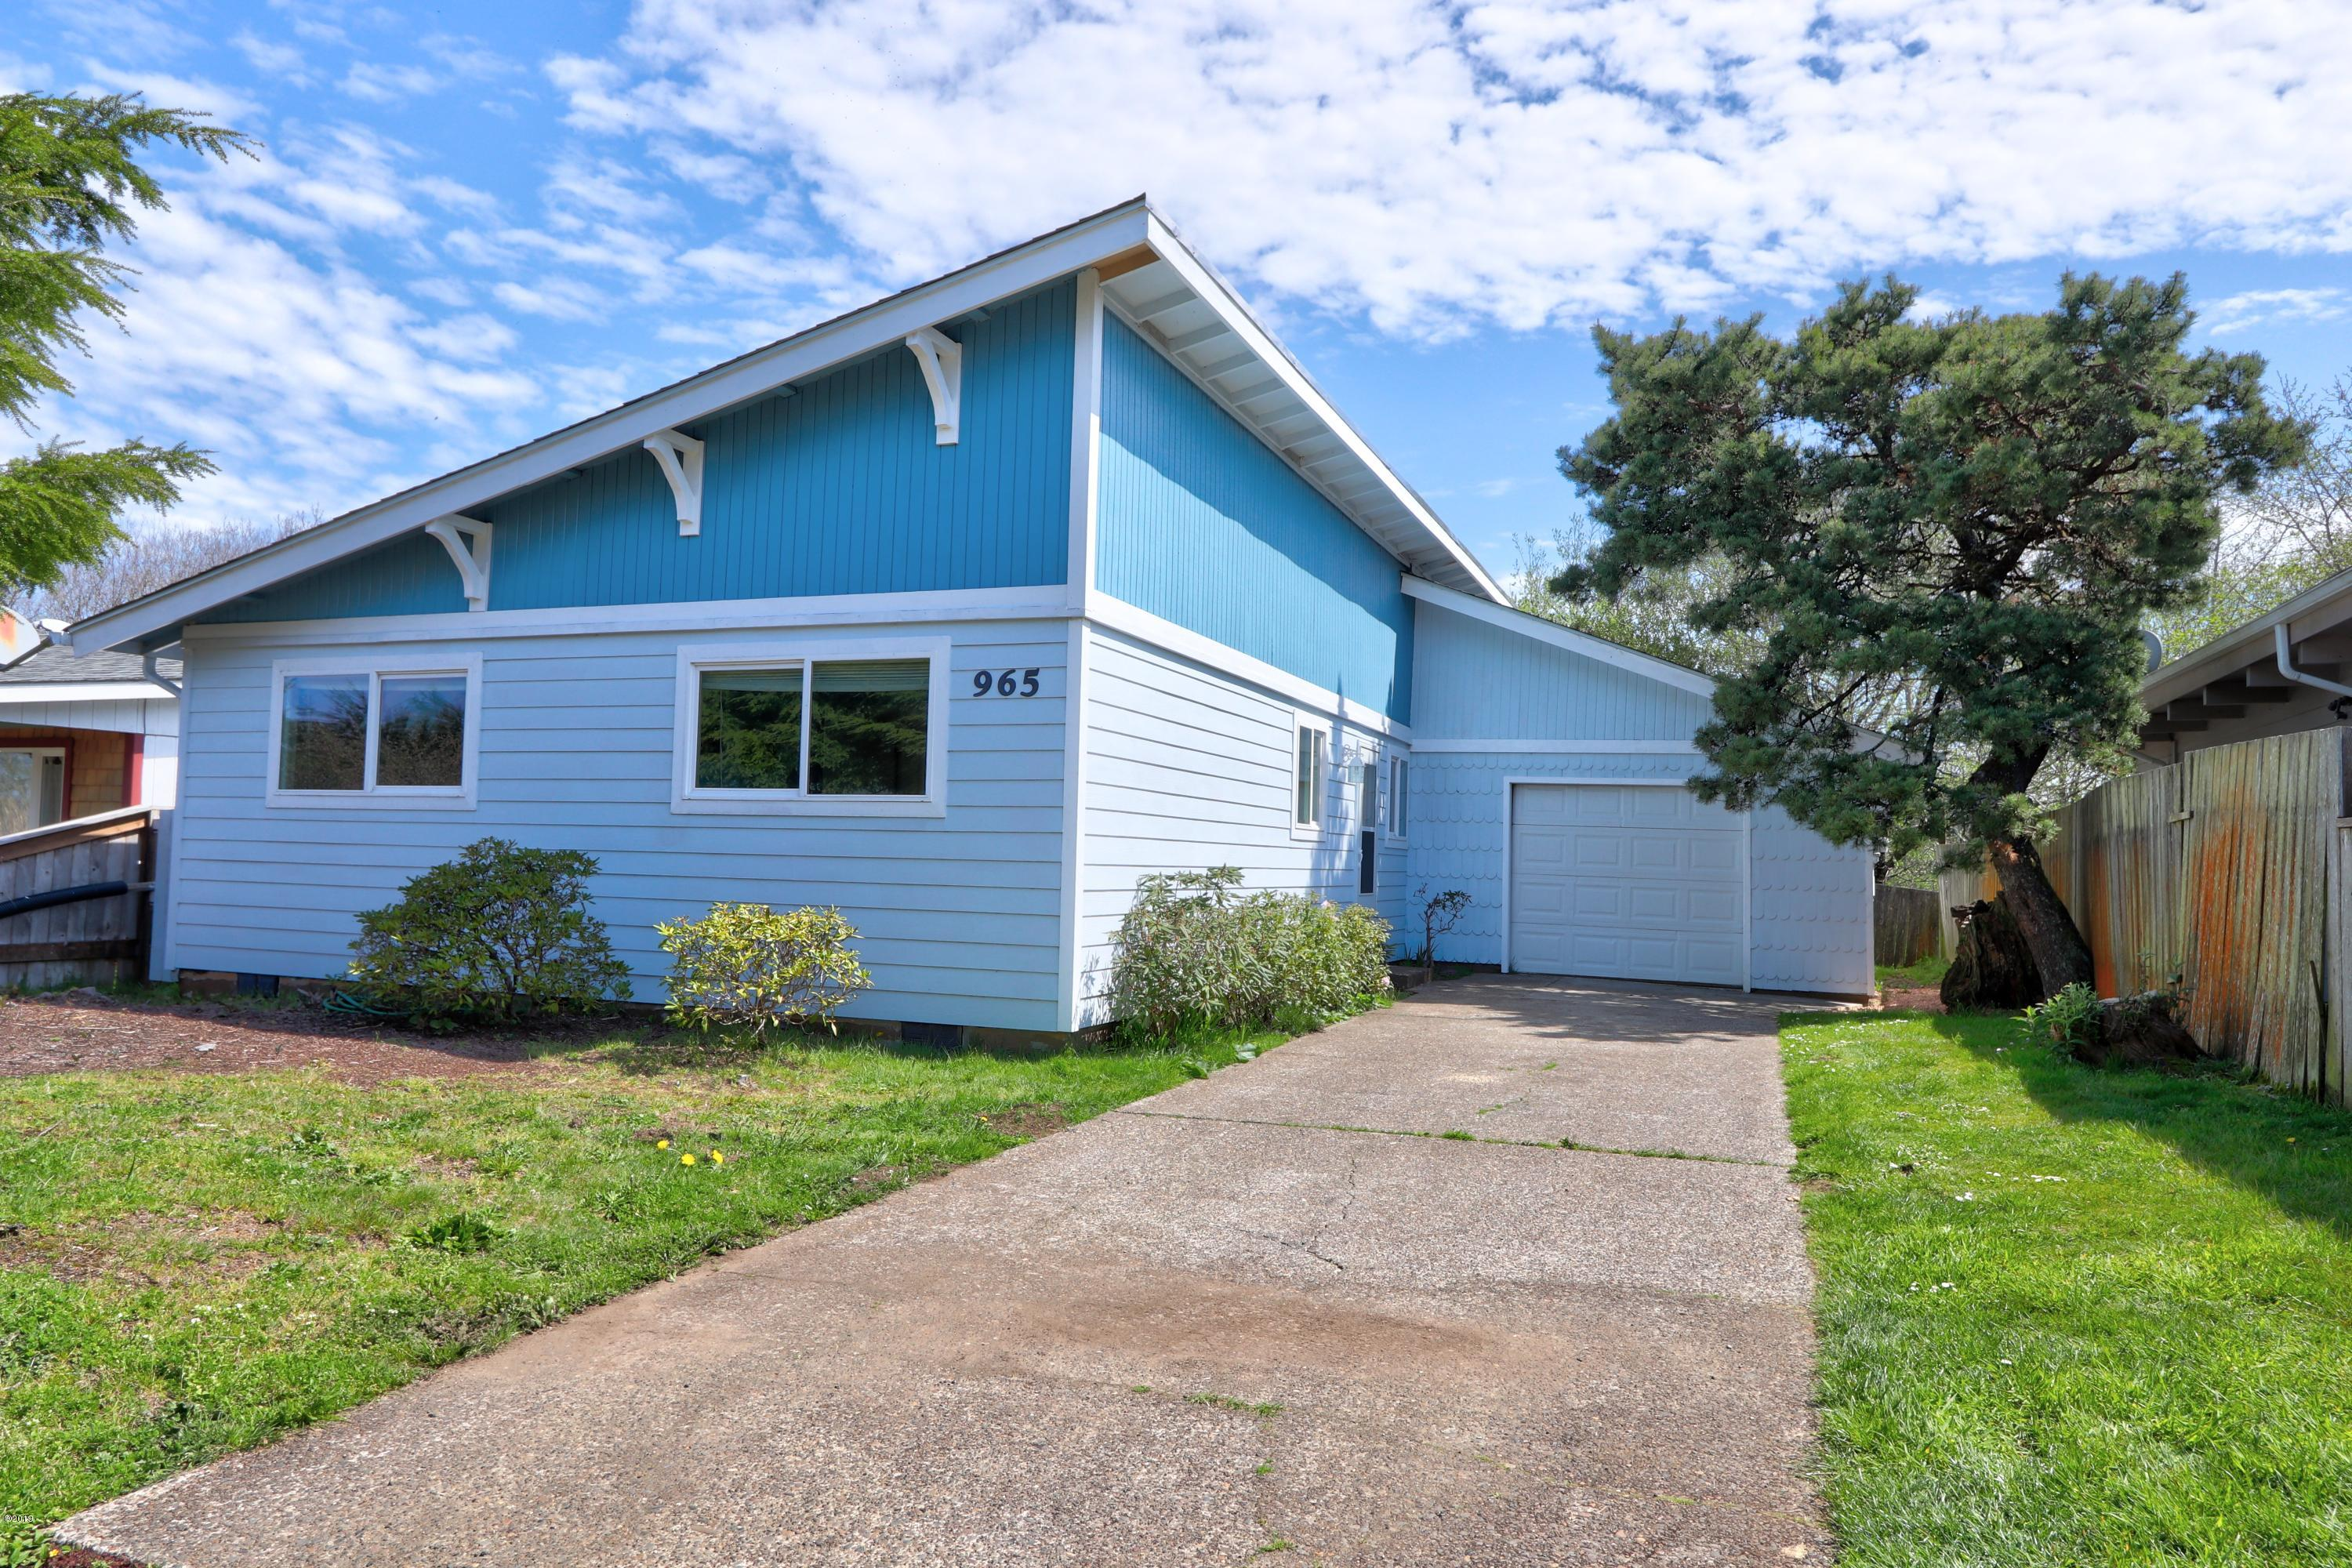 965 SE Ball Blvd, Waldport, OR 97394 - Front of house